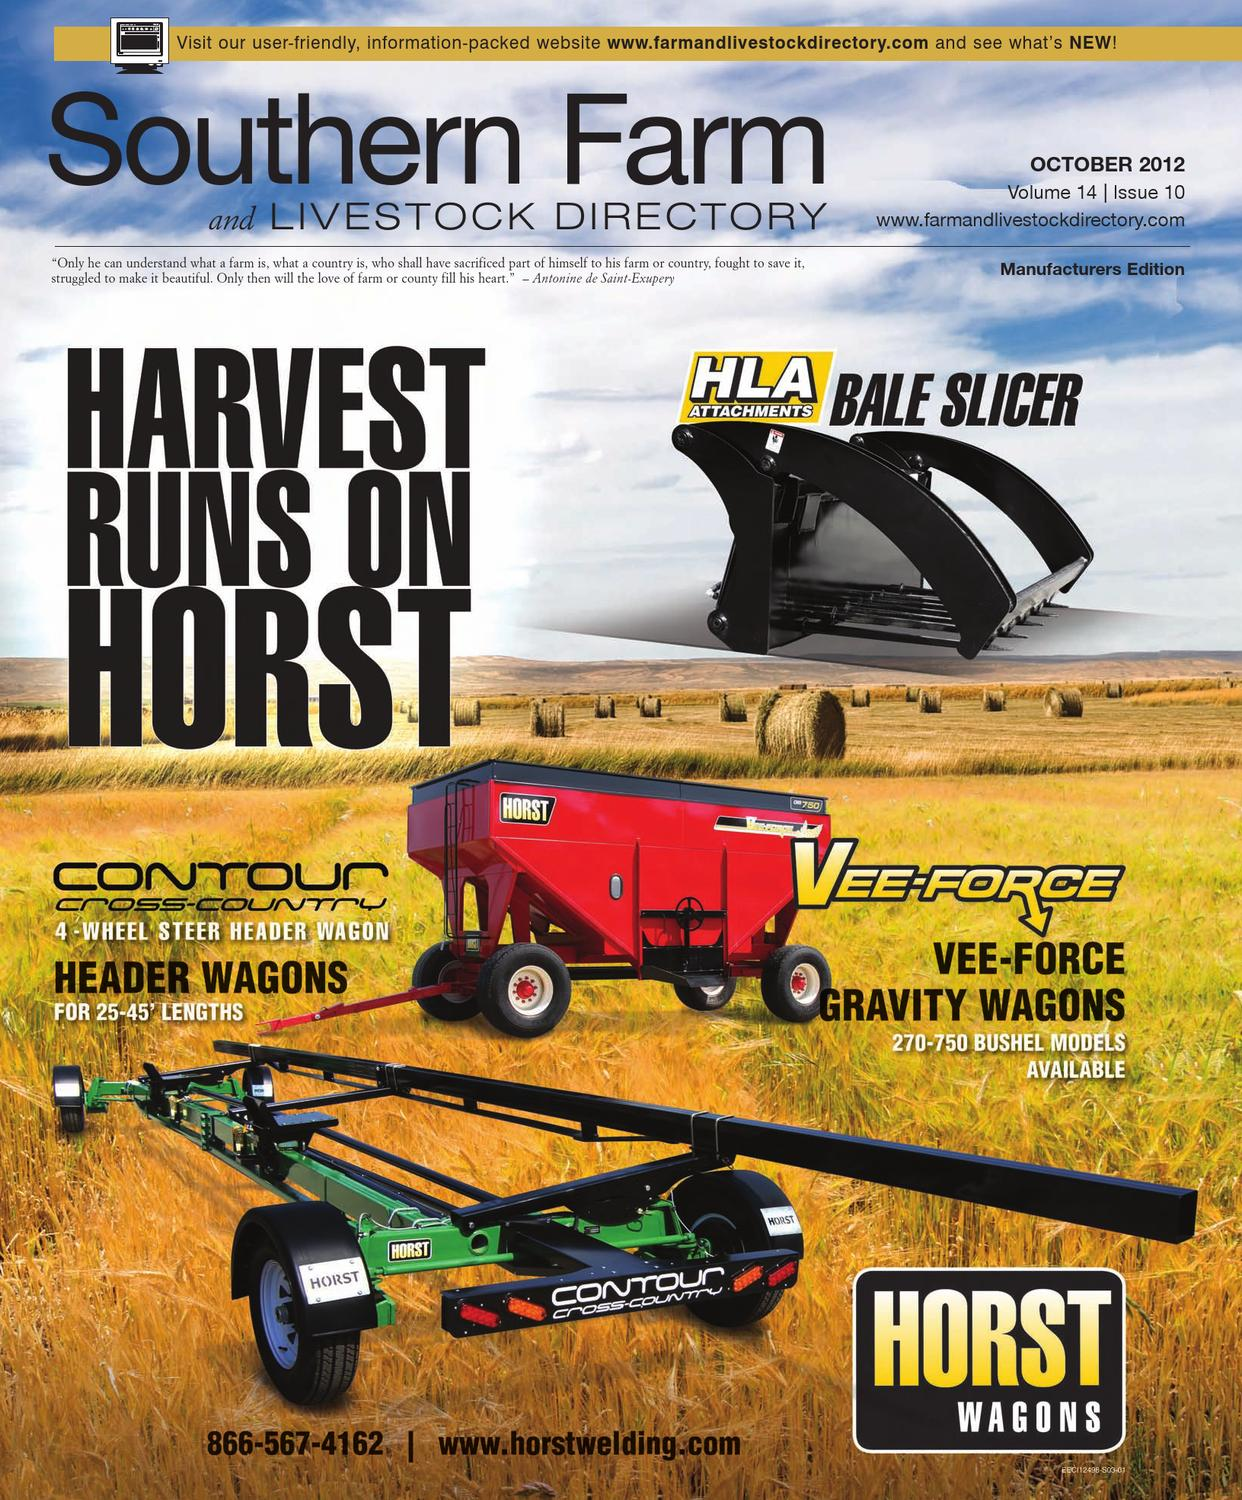 Southern Farm And Livestock Directory Oct 2012 By Five Star Co Op E3 Tractor Ignition Switch Wiring Diagram Publishing Inc Issuu